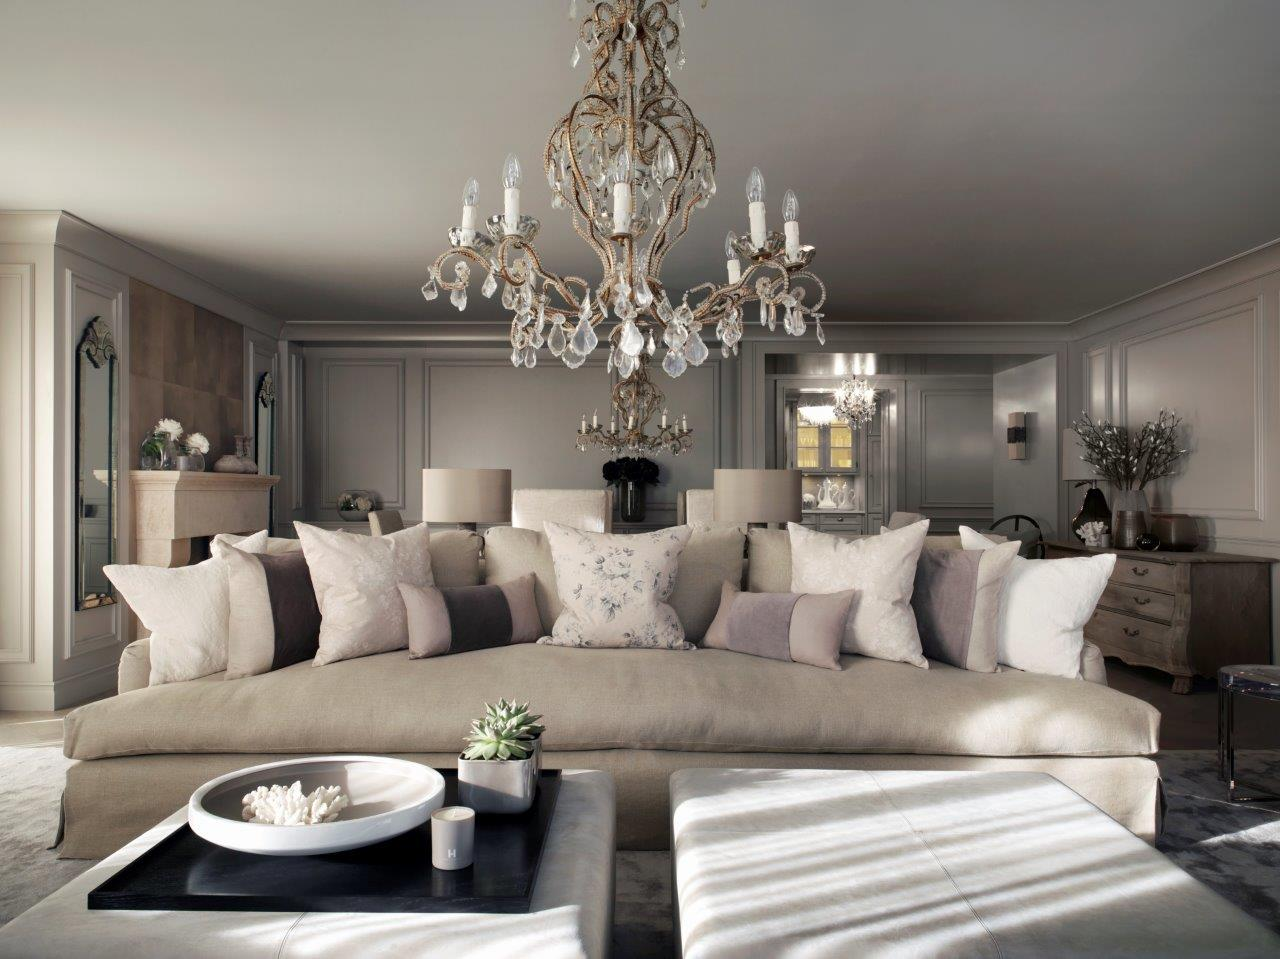 Interior Design Ideas For Living Rooms: A Luxury Swiss Chalet Designed By Kelly Hoppen